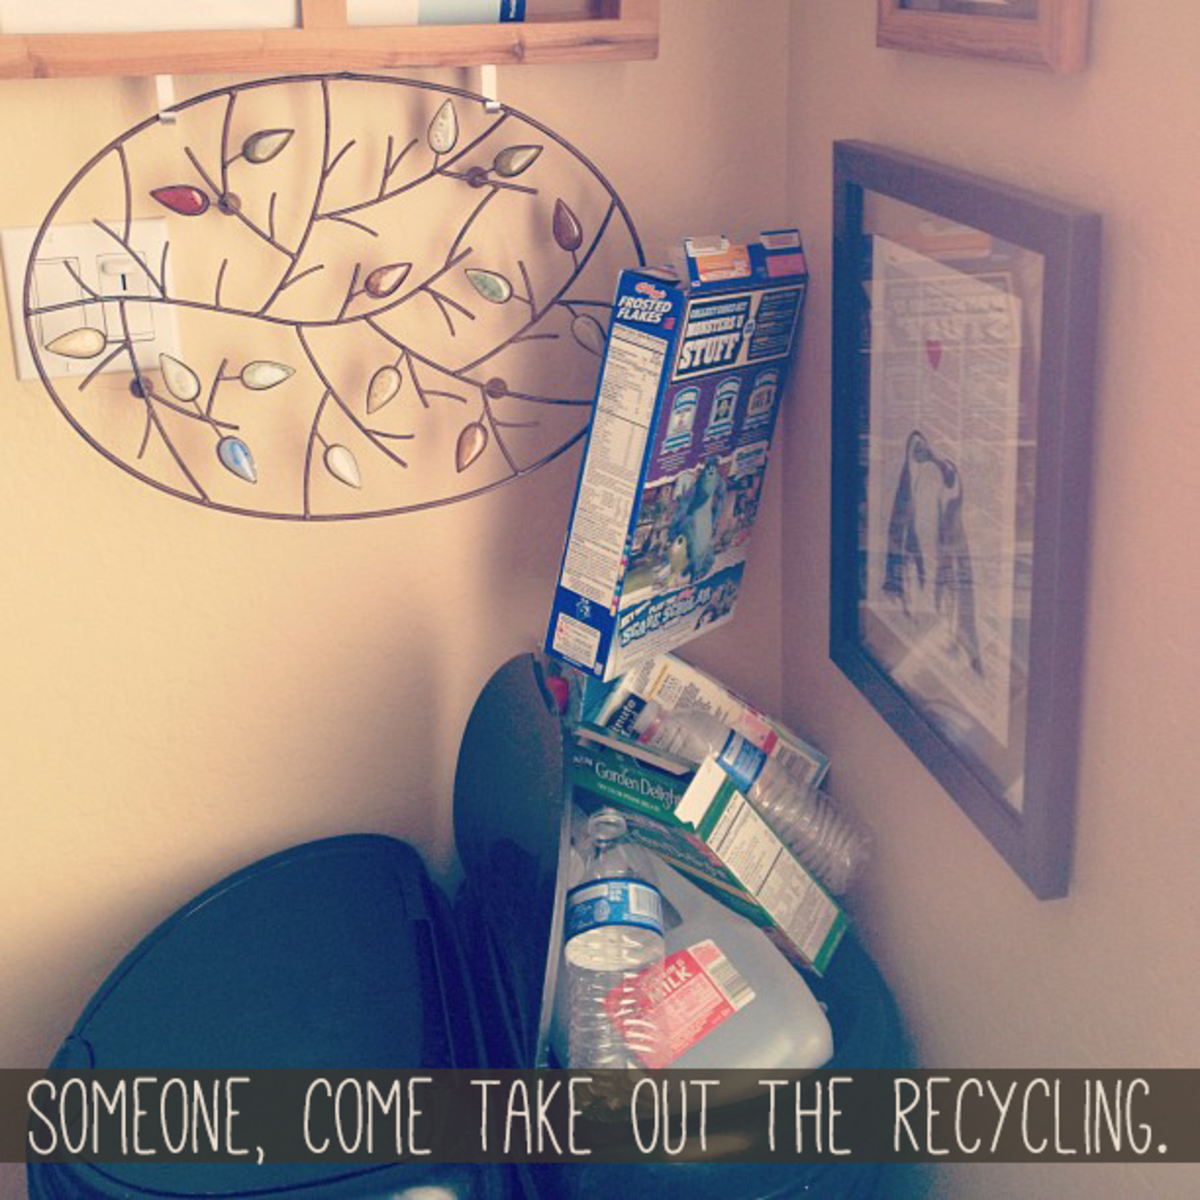 The frame I used usually holds this image of penguins (above the recycling).